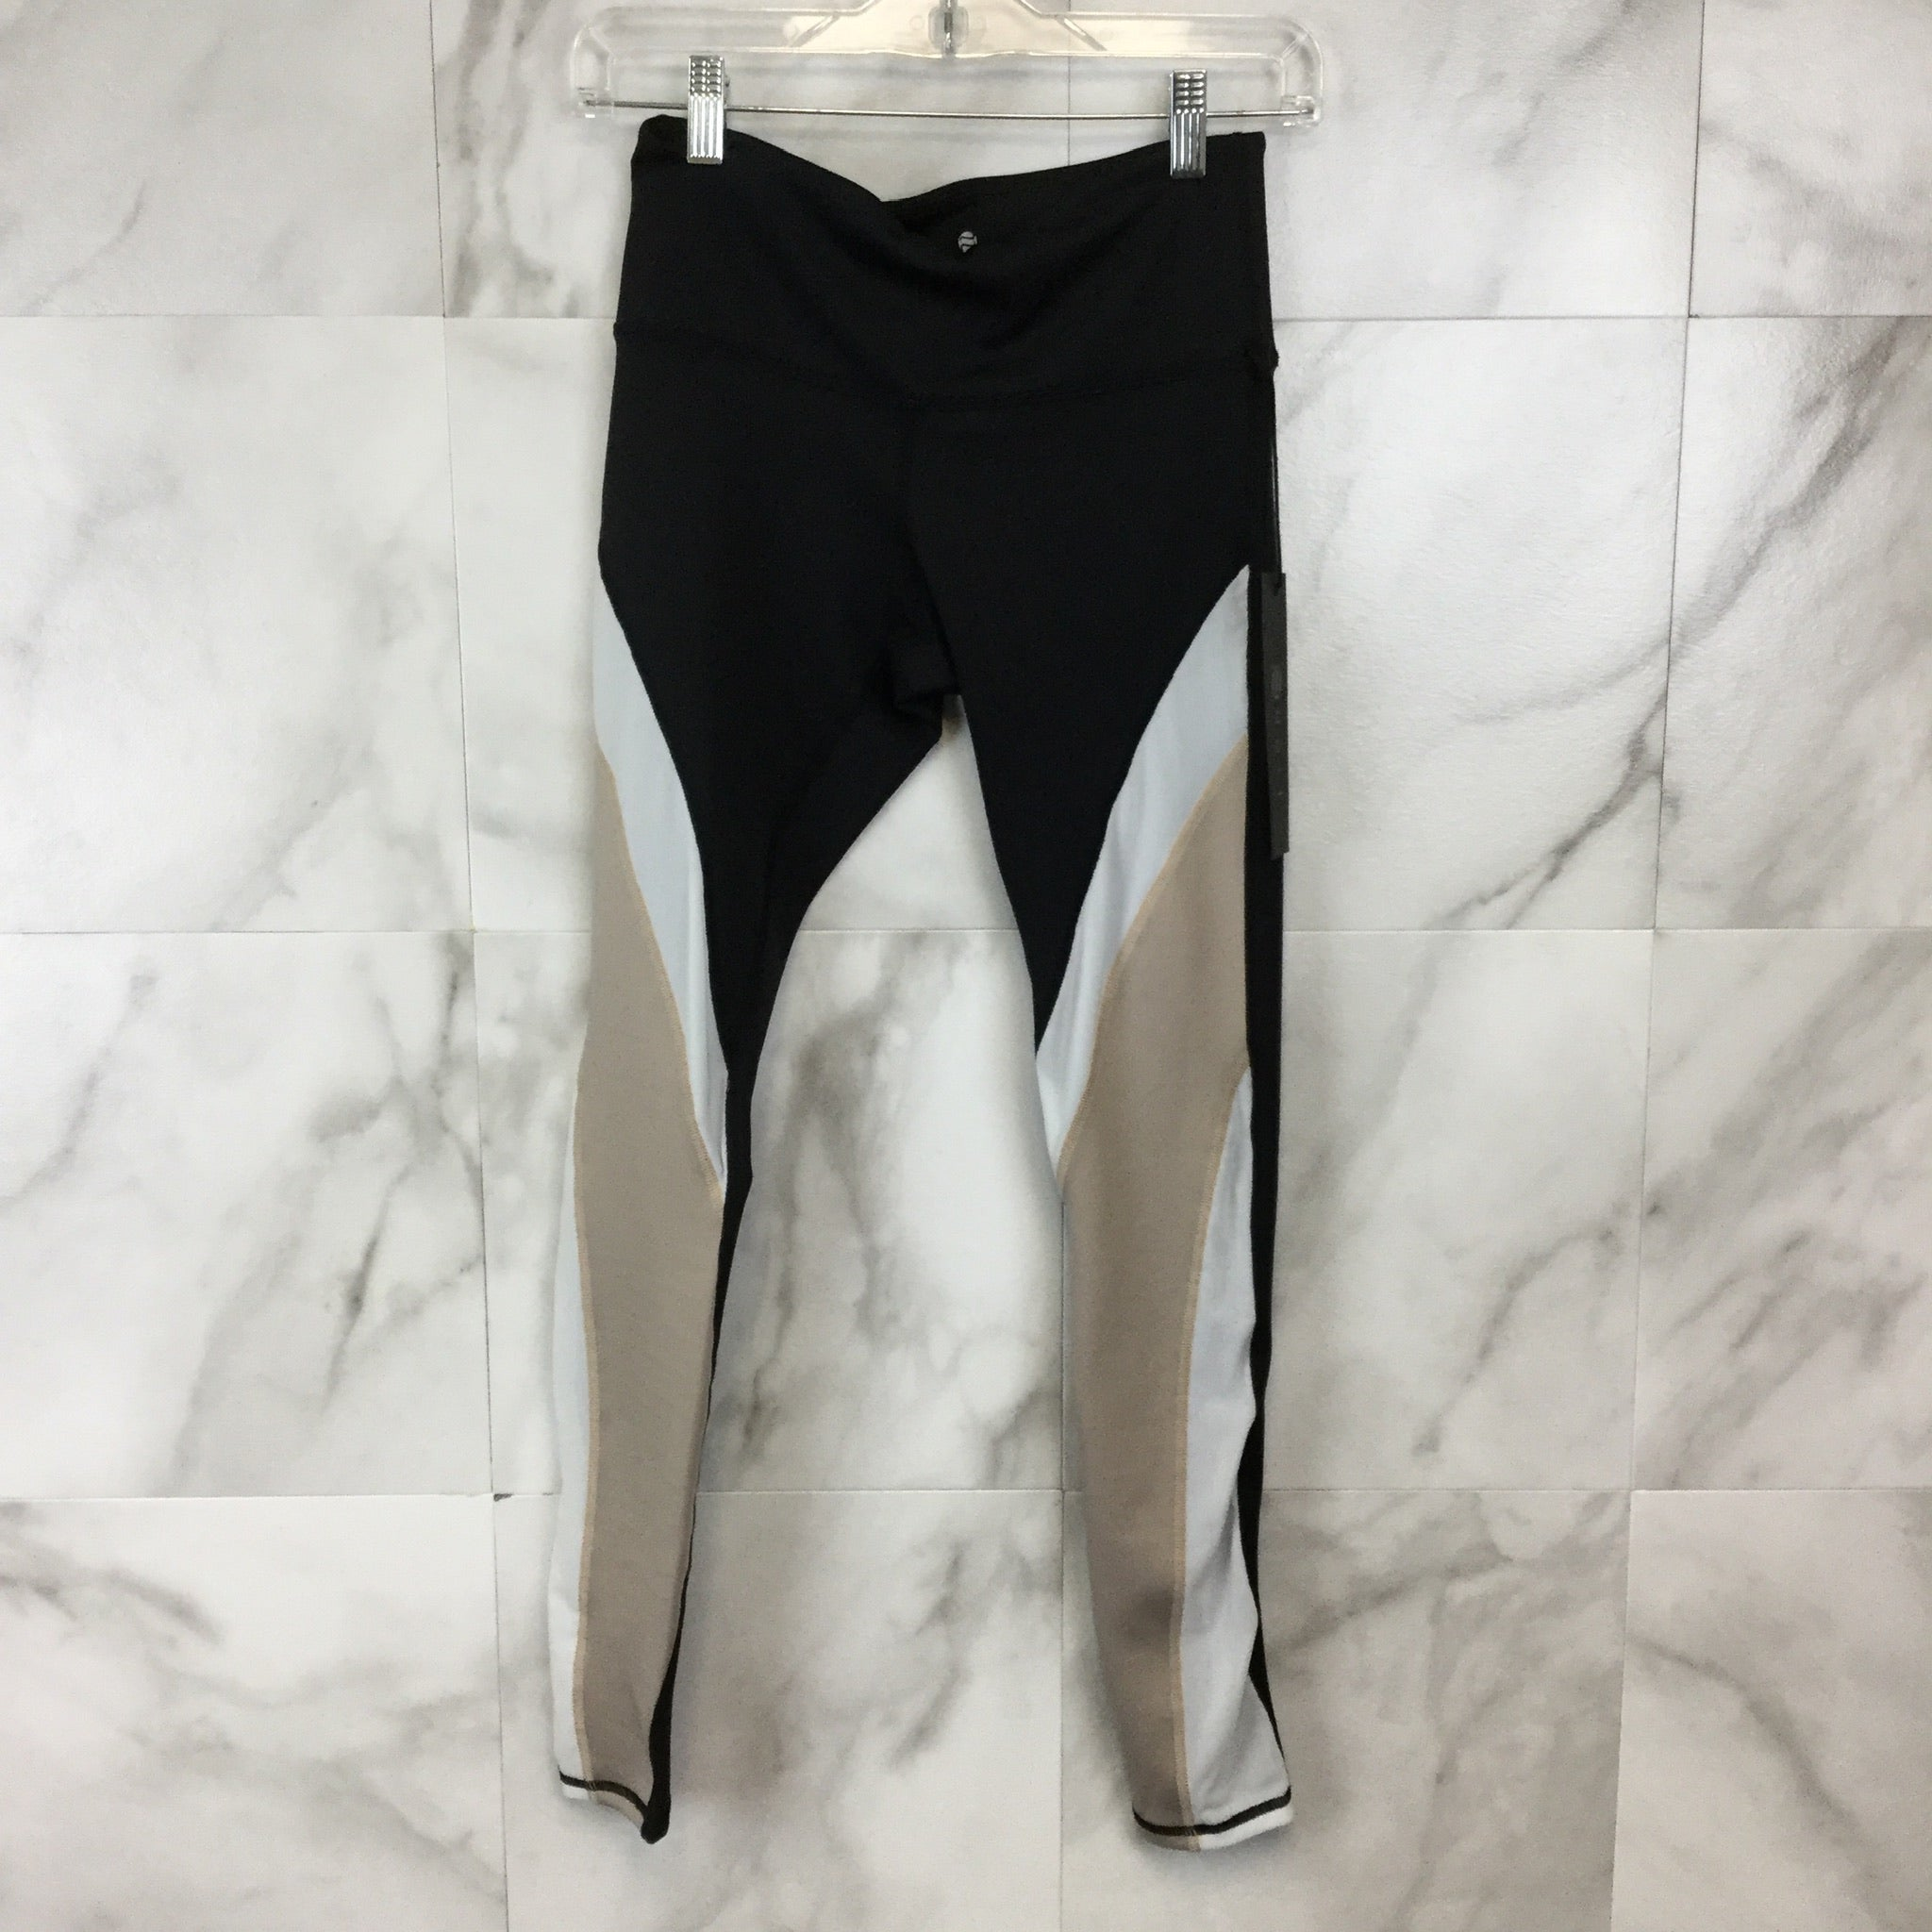 New! Noli Mesh Paneled Yoga Pants - Size S